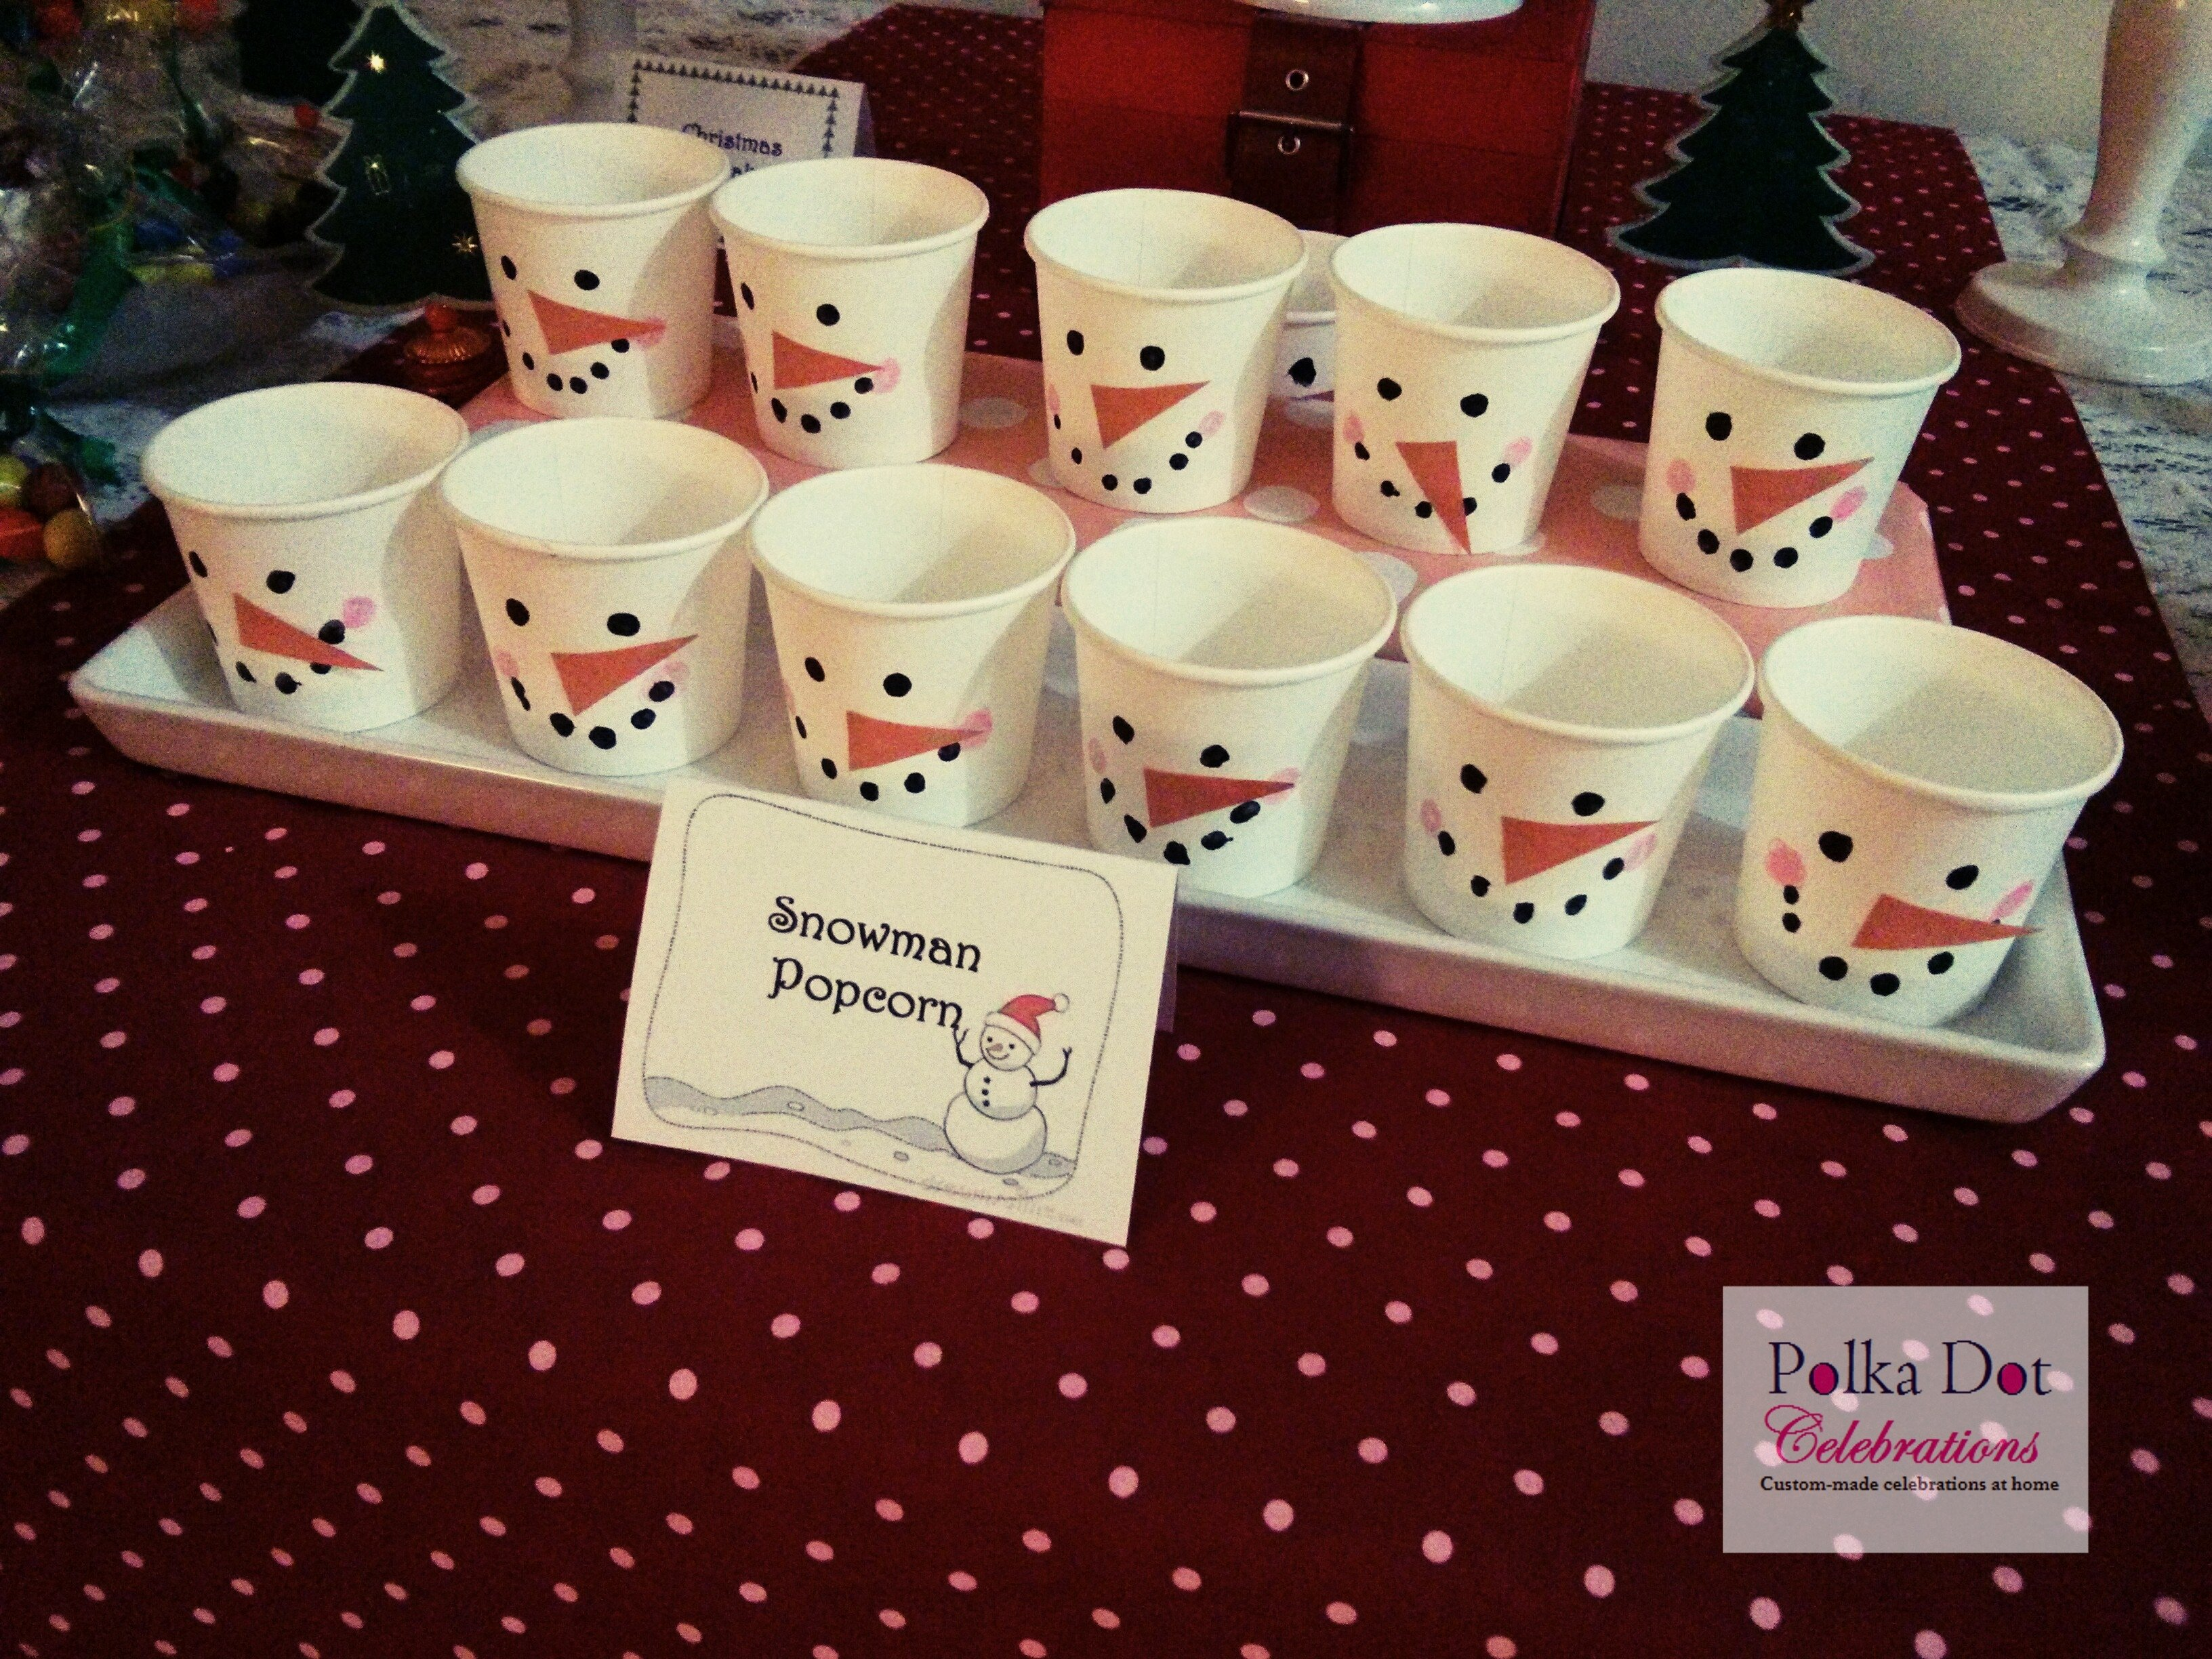 10 Stunning Christmas Picture Ideas For Children christmas party ideas for kids party polka dot celebrations 1 2021